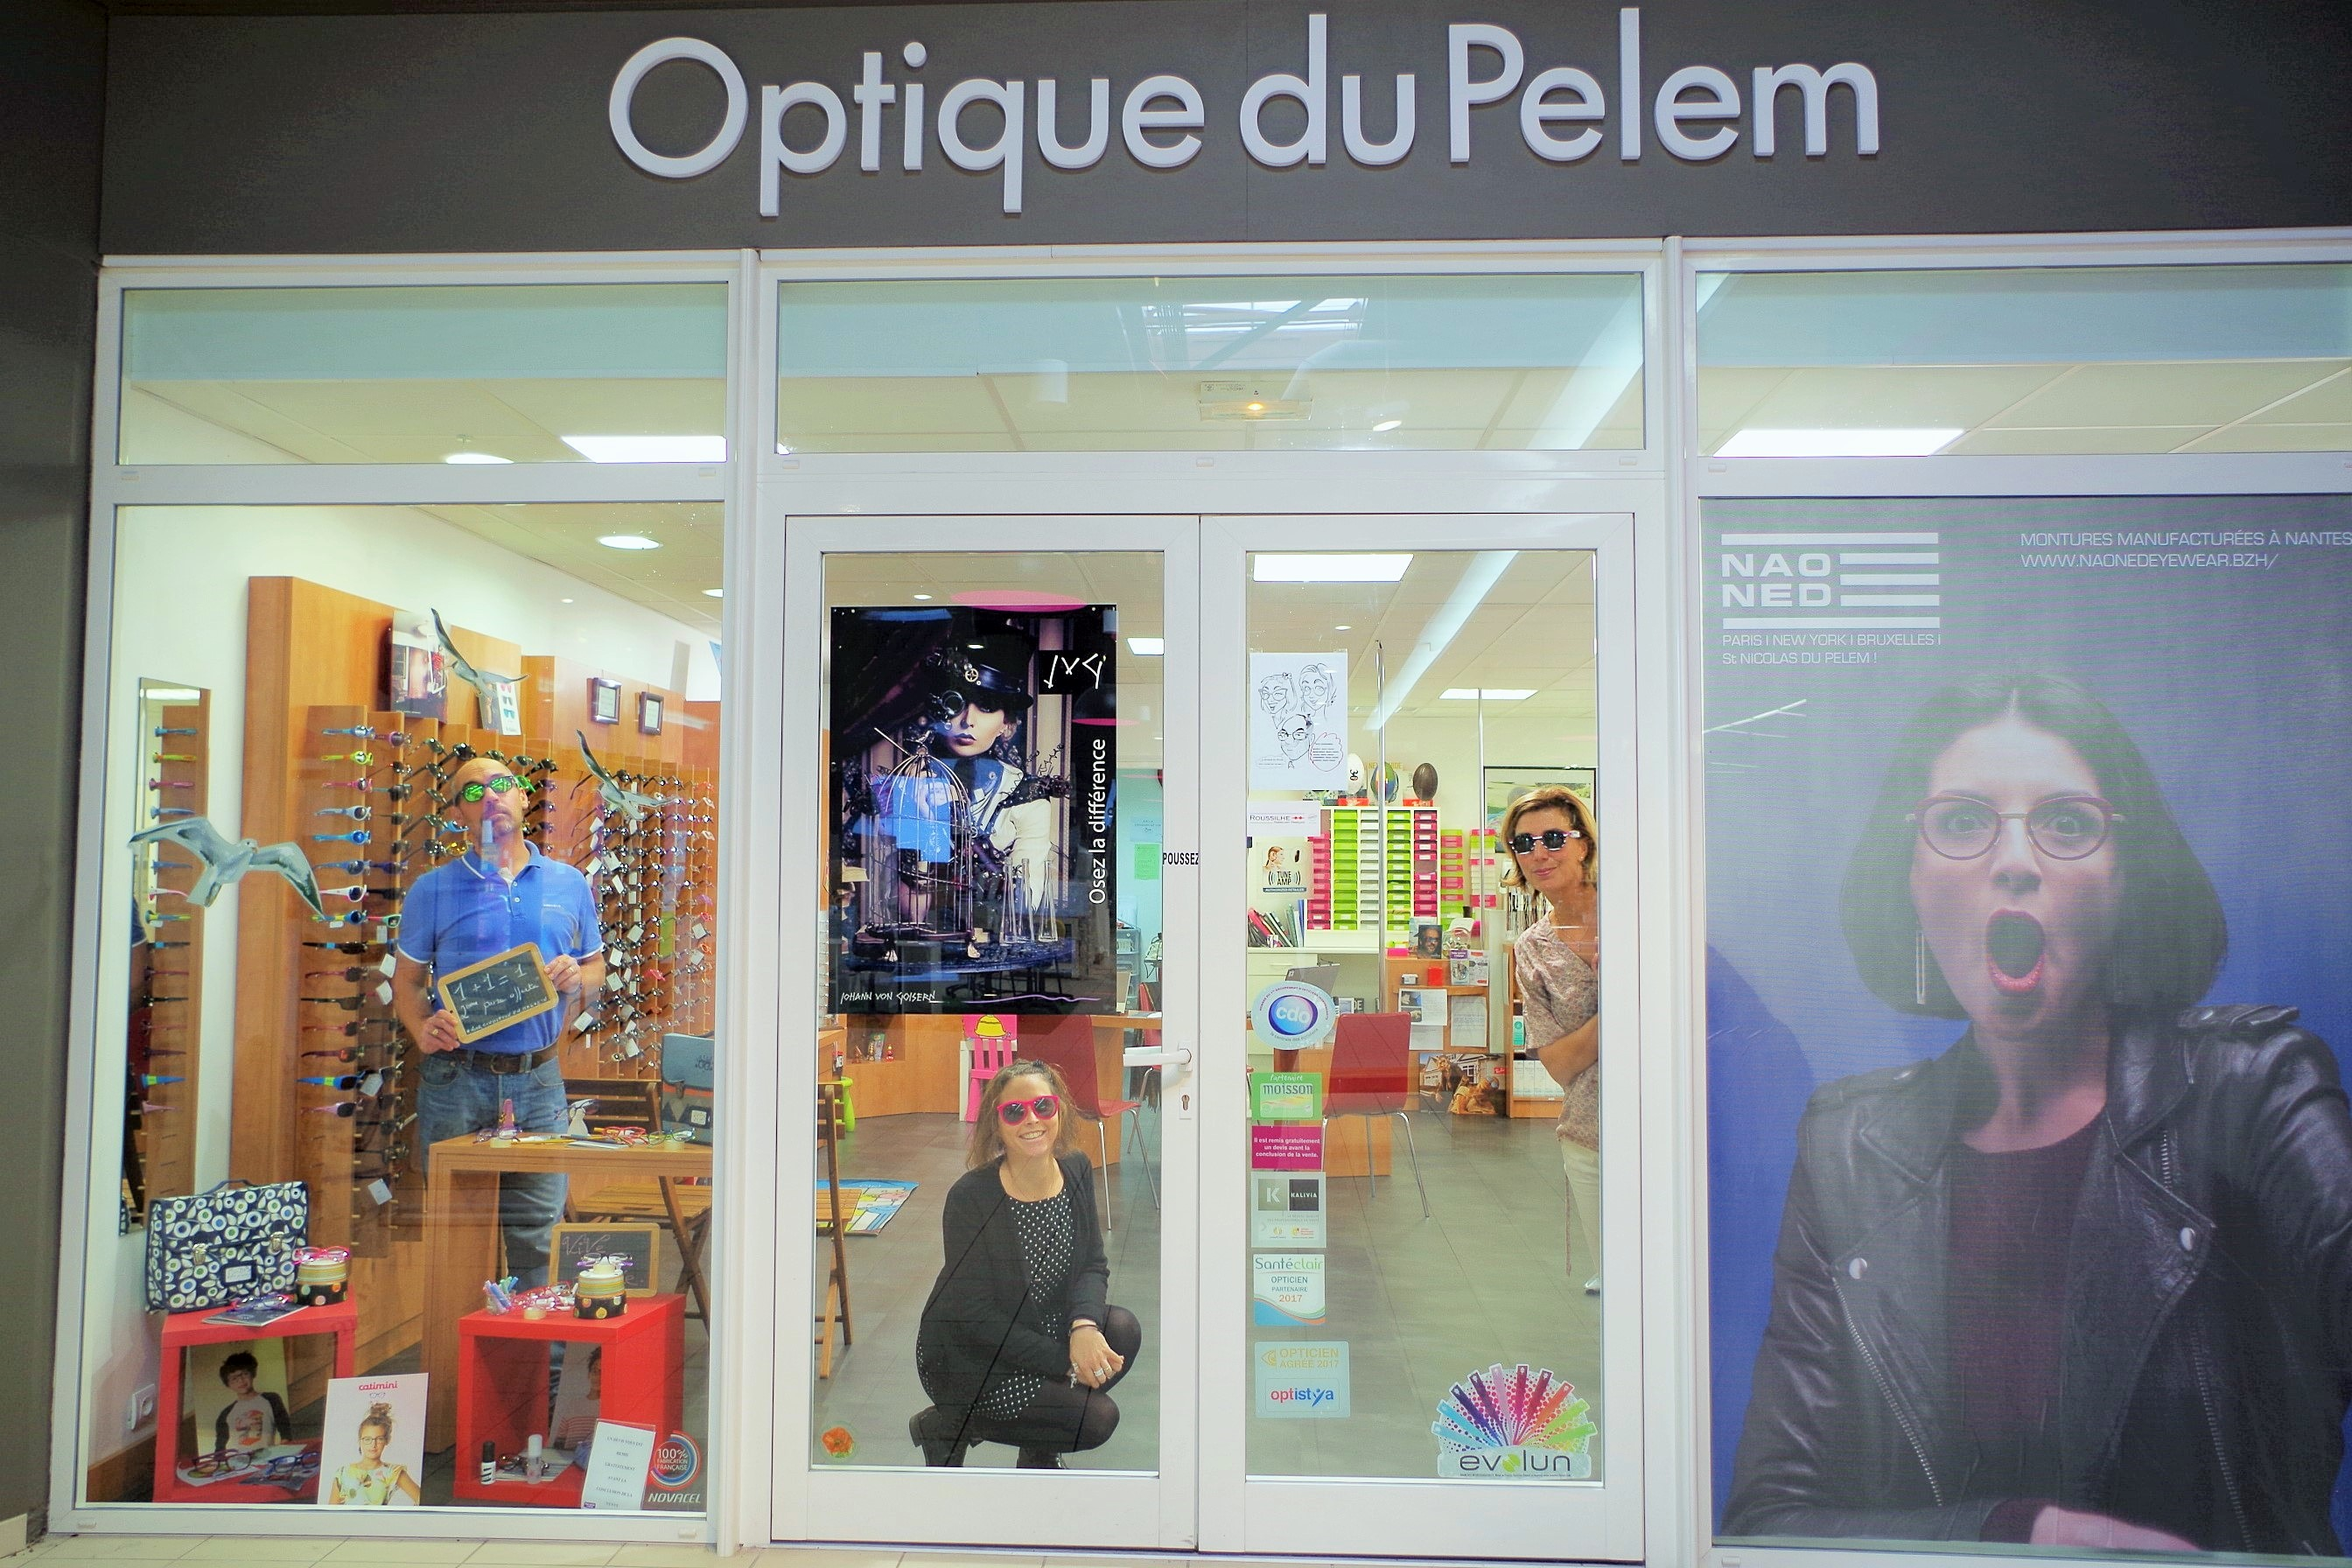 Opticien proposant la marque GEORGE, GINA & LUCY : OPTIQUE DU PELEM,  Croas Don Herry, 22480 SAINT NICOLAS DU PELEM